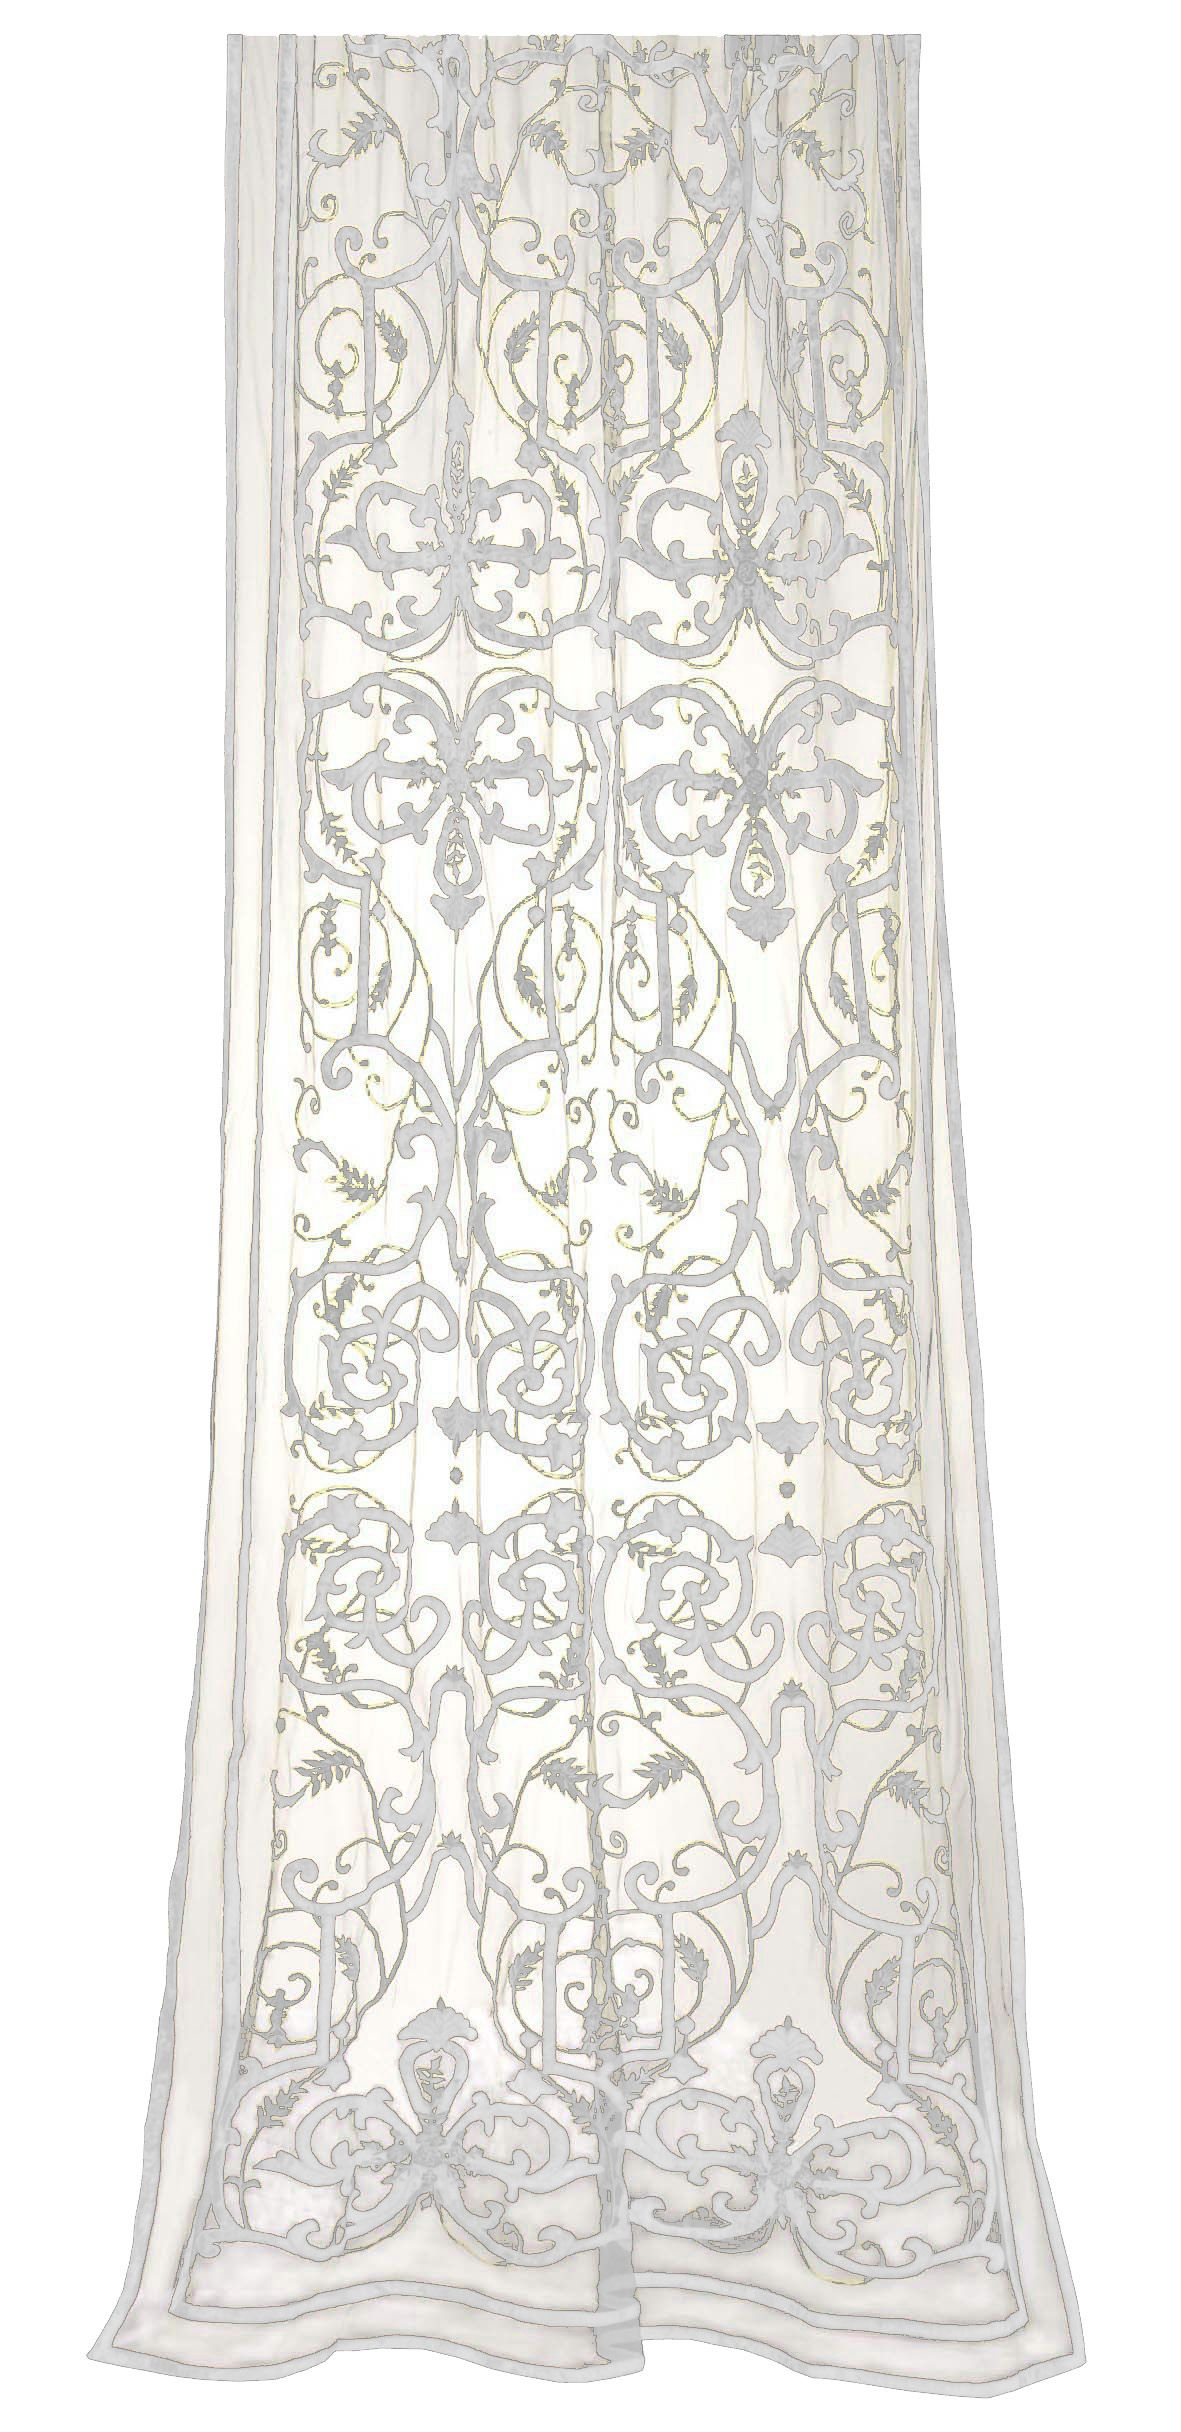 The Frances sheer panel. Latte net base with off white cotton sateen appliqué and embroidery. W140xL300cm. Contact sales@englishhome.com or +44(0)20 7738 0541 for custom colour options and trade information.